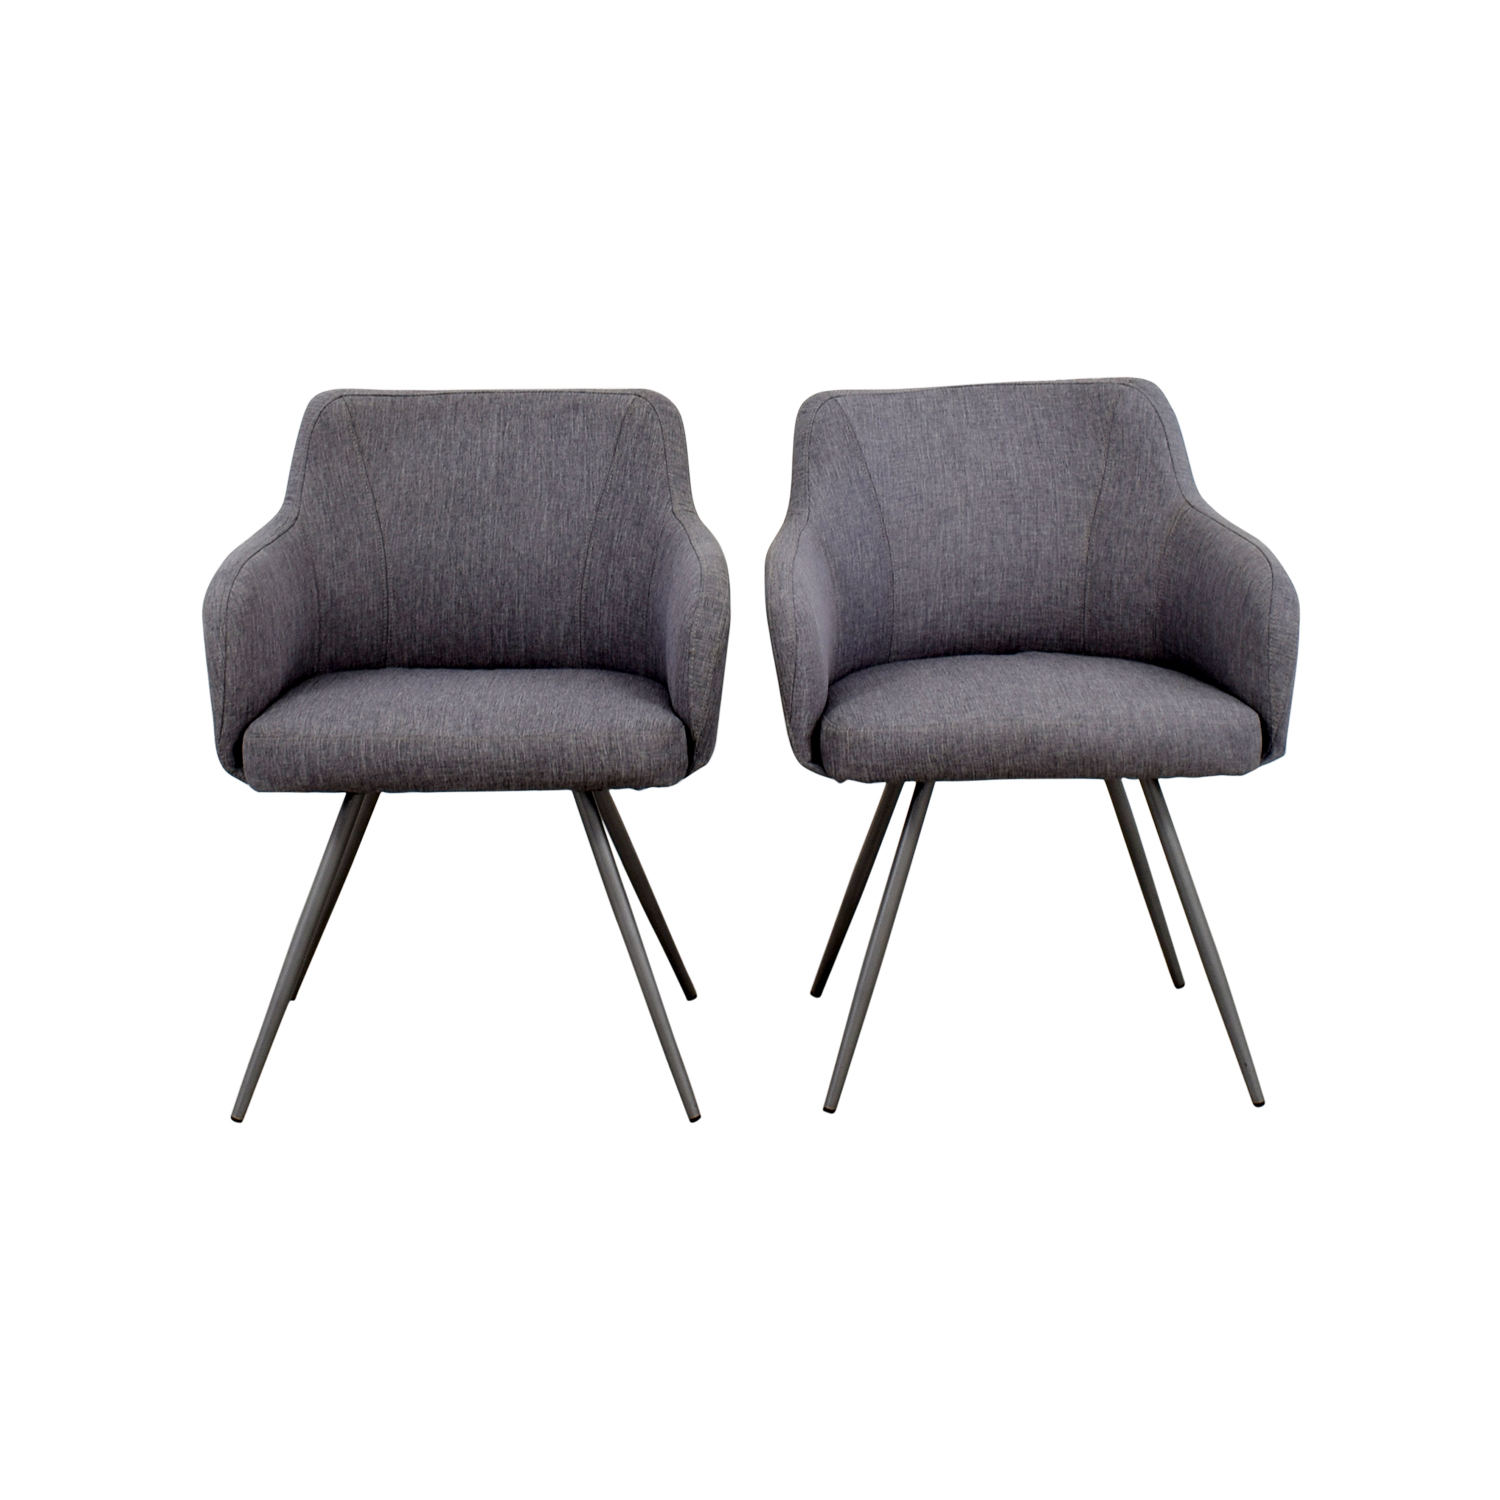 AllModern AllModern Mid-Century Grey Upholstered Dining Chairs nyc